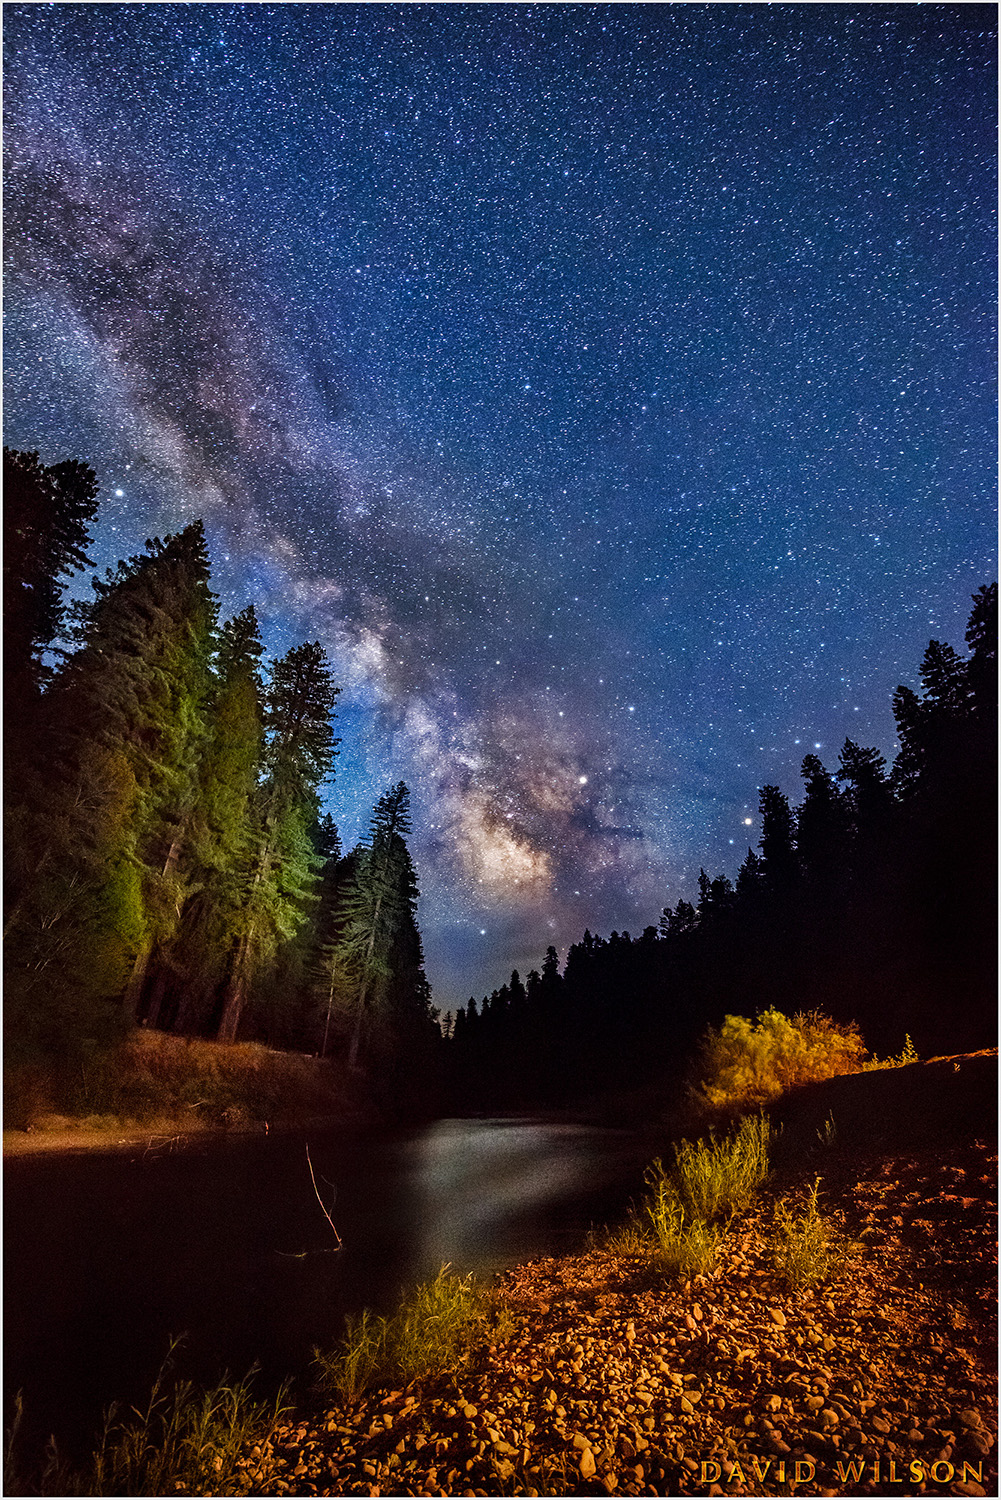 Milky Way over Eel River